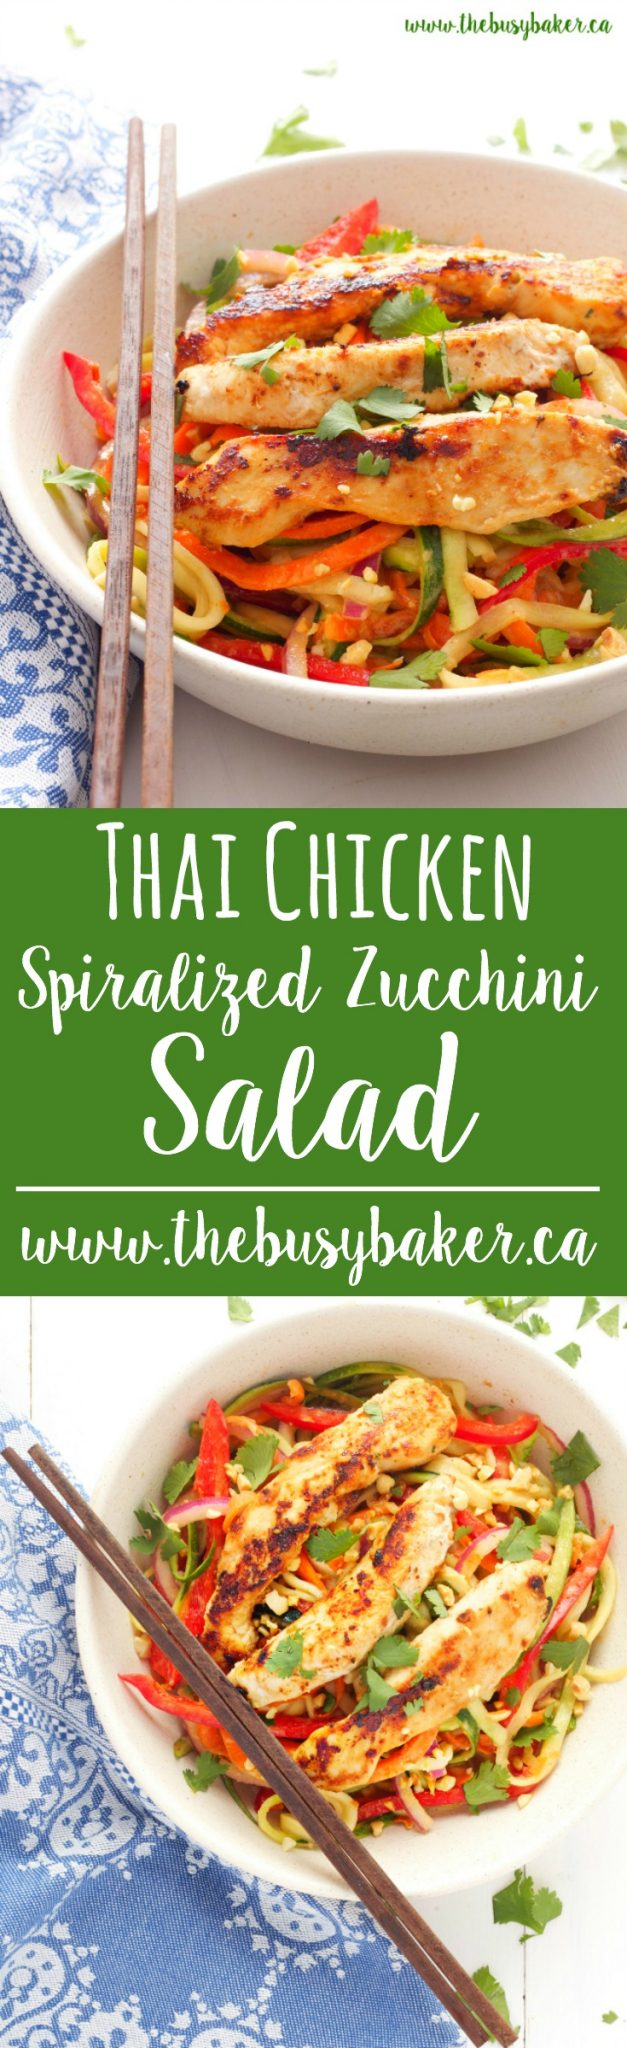 This Thai Chicken Spiralized Zucchini Salad is a healthy Asian-inspired meal featuring grilled chicken breast, spiralized veggies, and an easy peanut sauce! Recipe from www.thebusybaker.ca via @busybakerblog